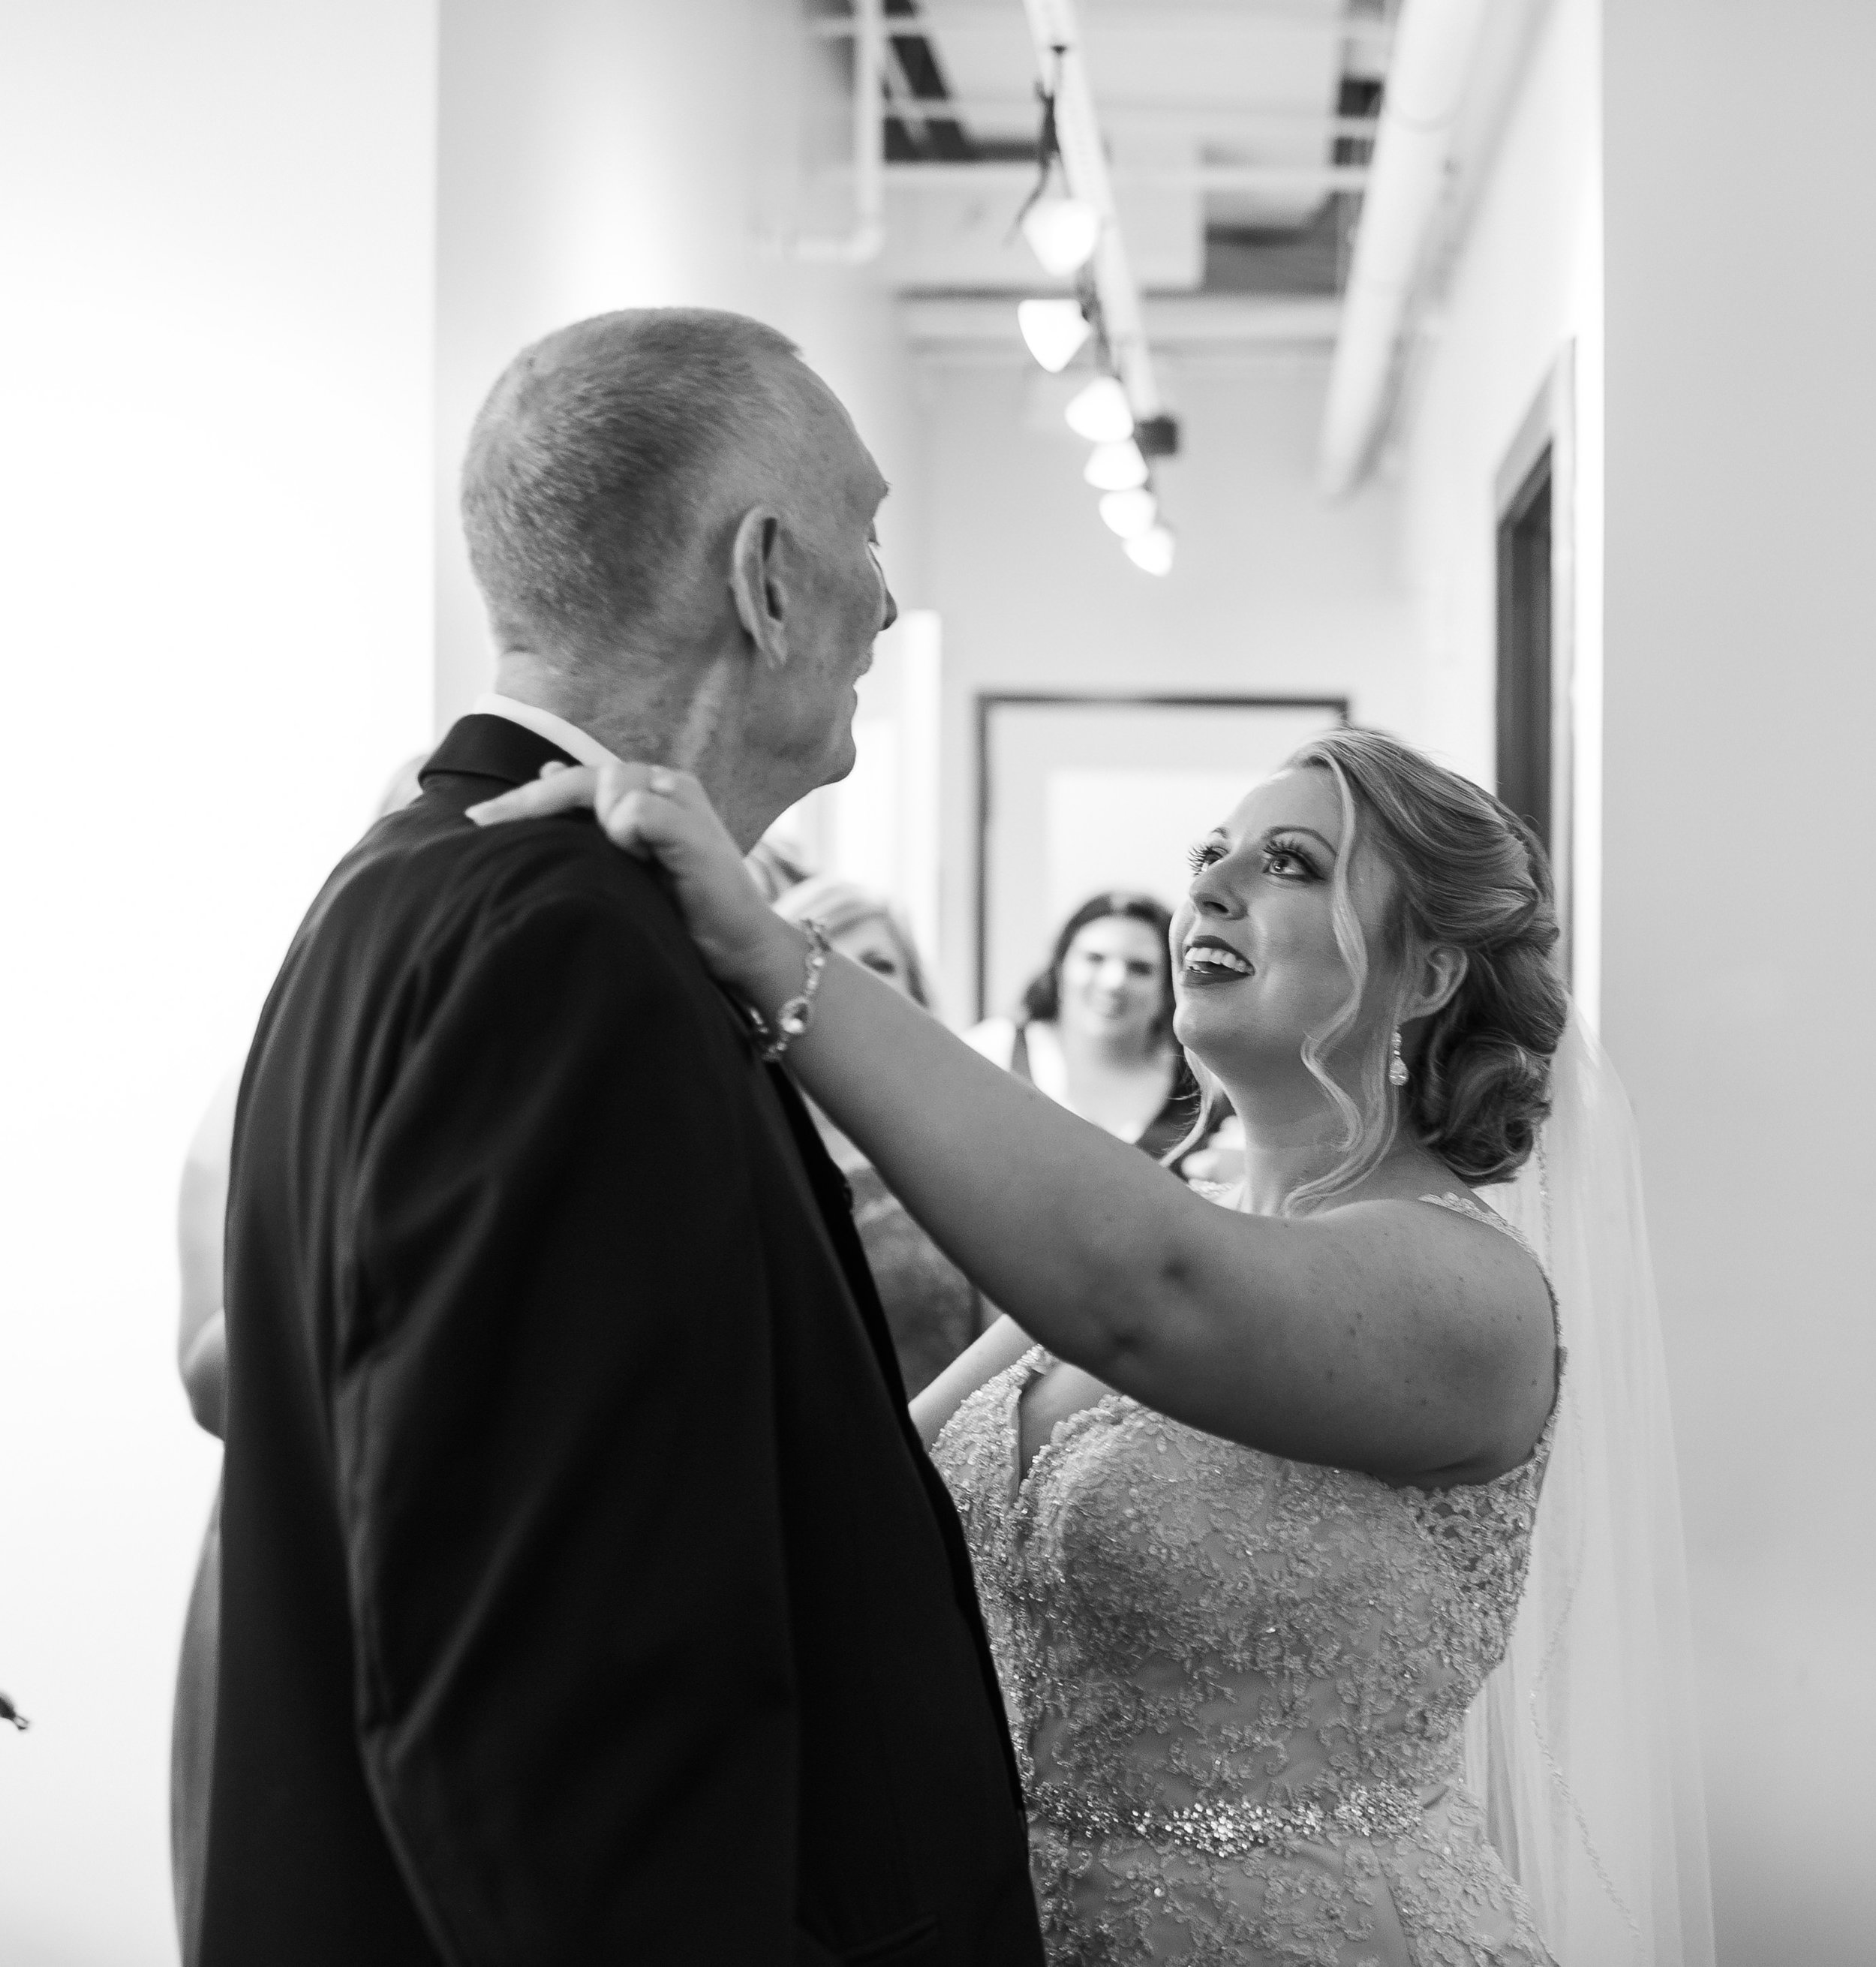 Chris + Nicole Wedding Details Nashville